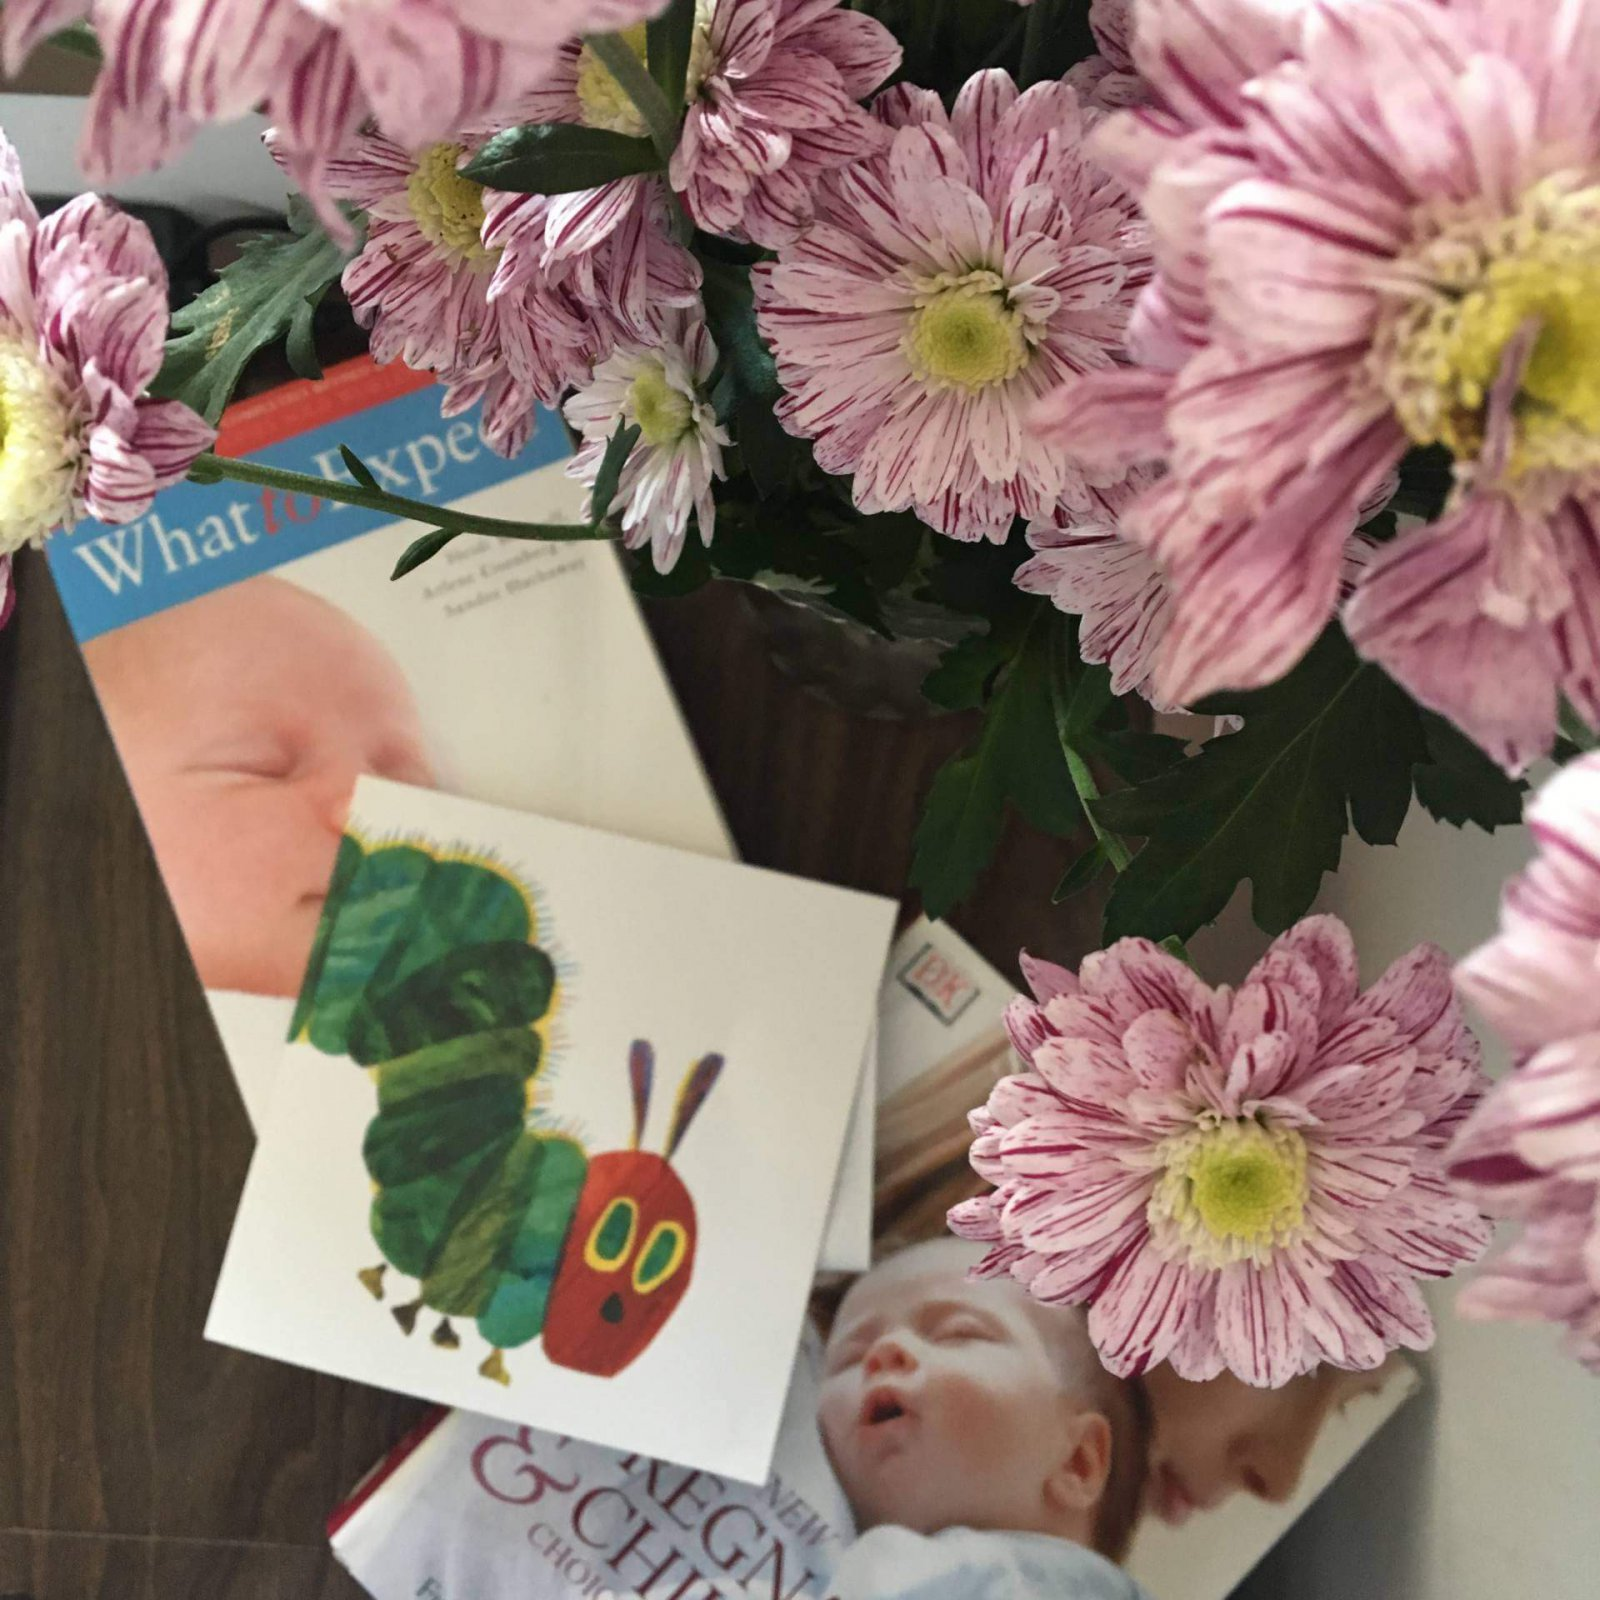 #MCDressMyBump competition Nannies card, books and flowers